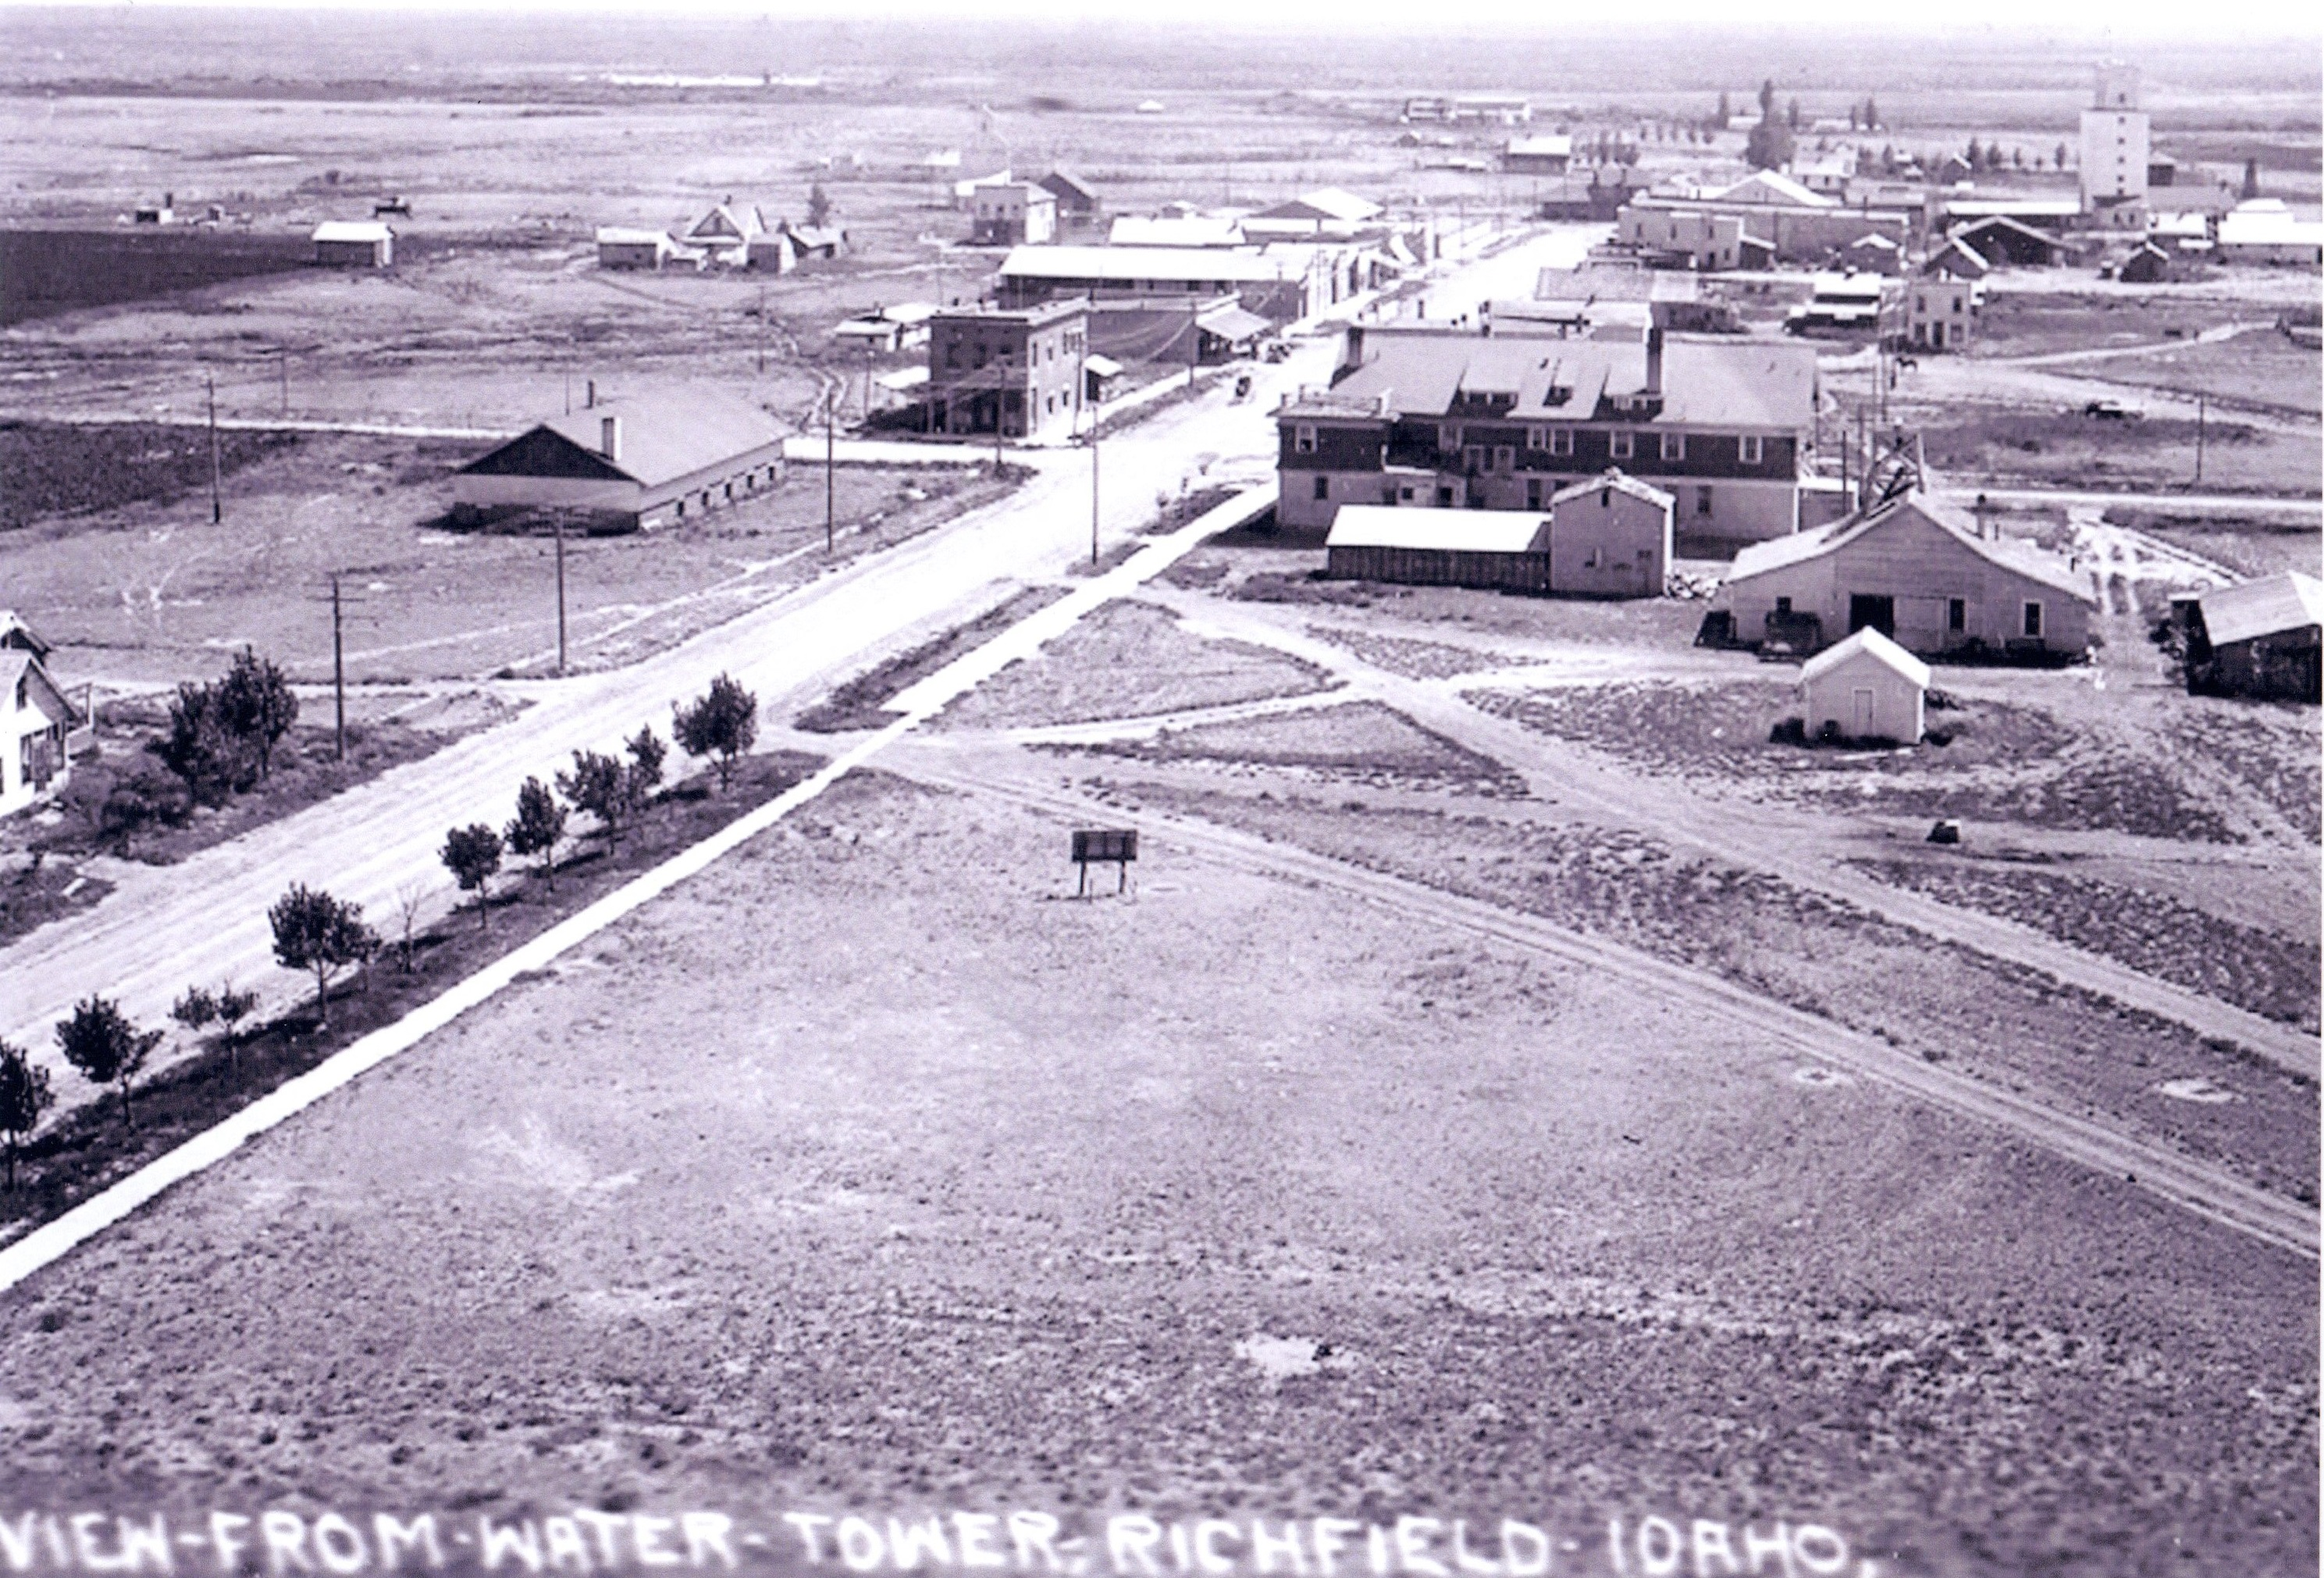 Historic Richfield, Idaho south from water tower